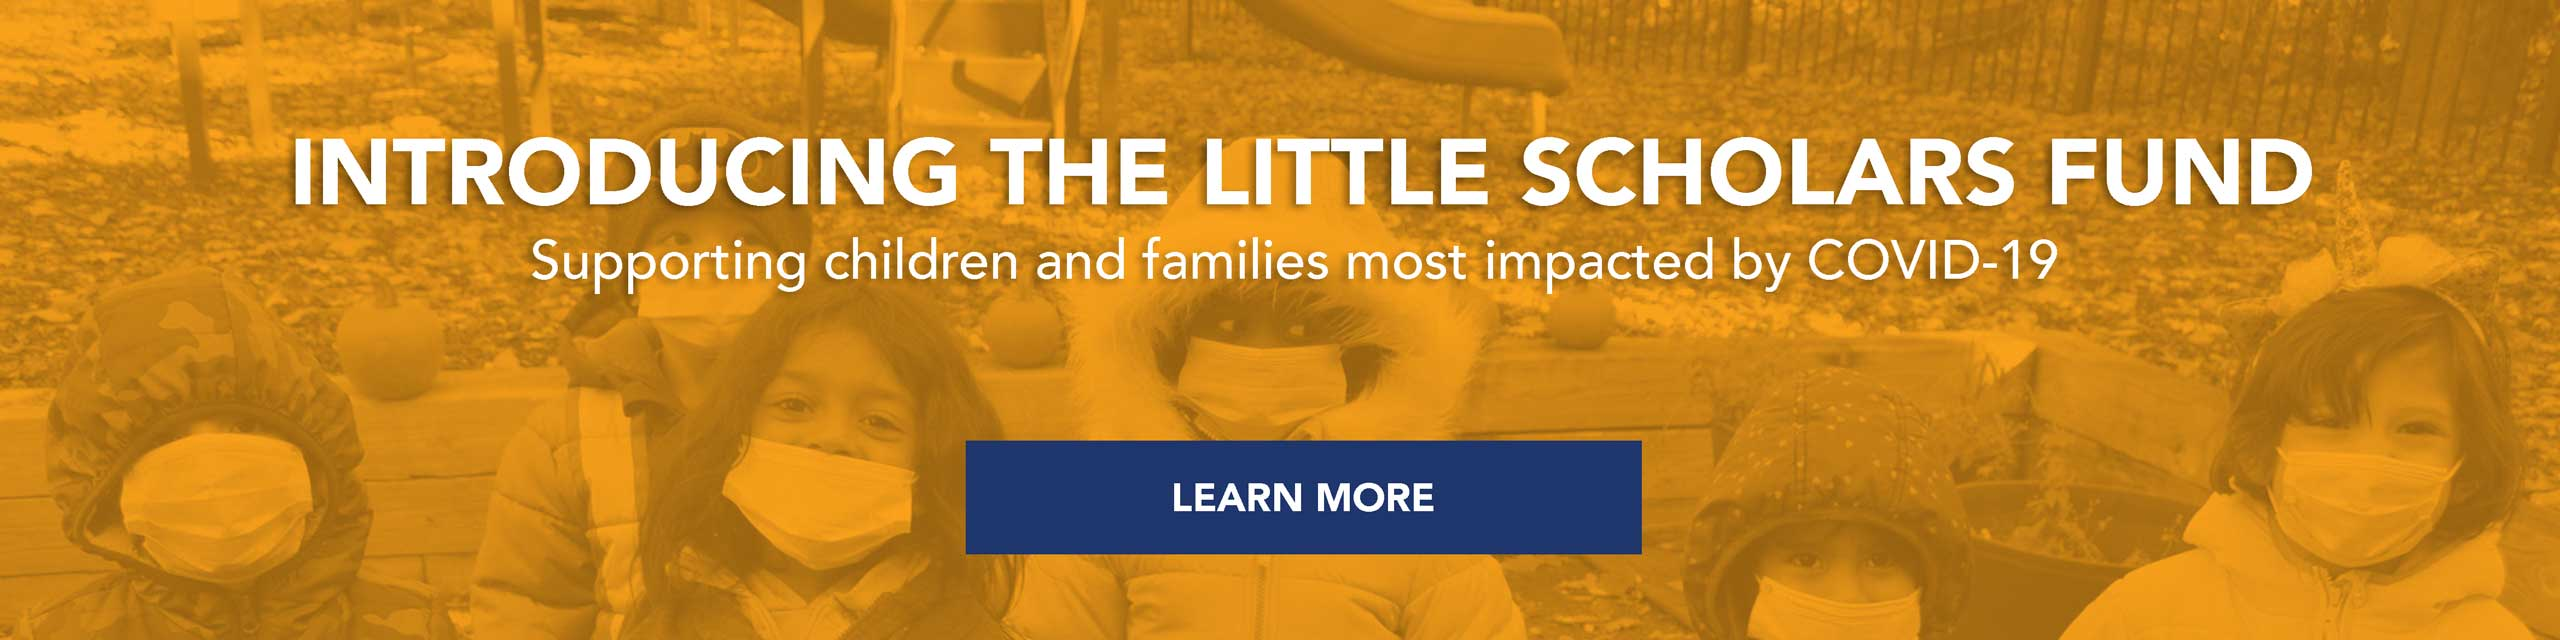 littlescholars_home